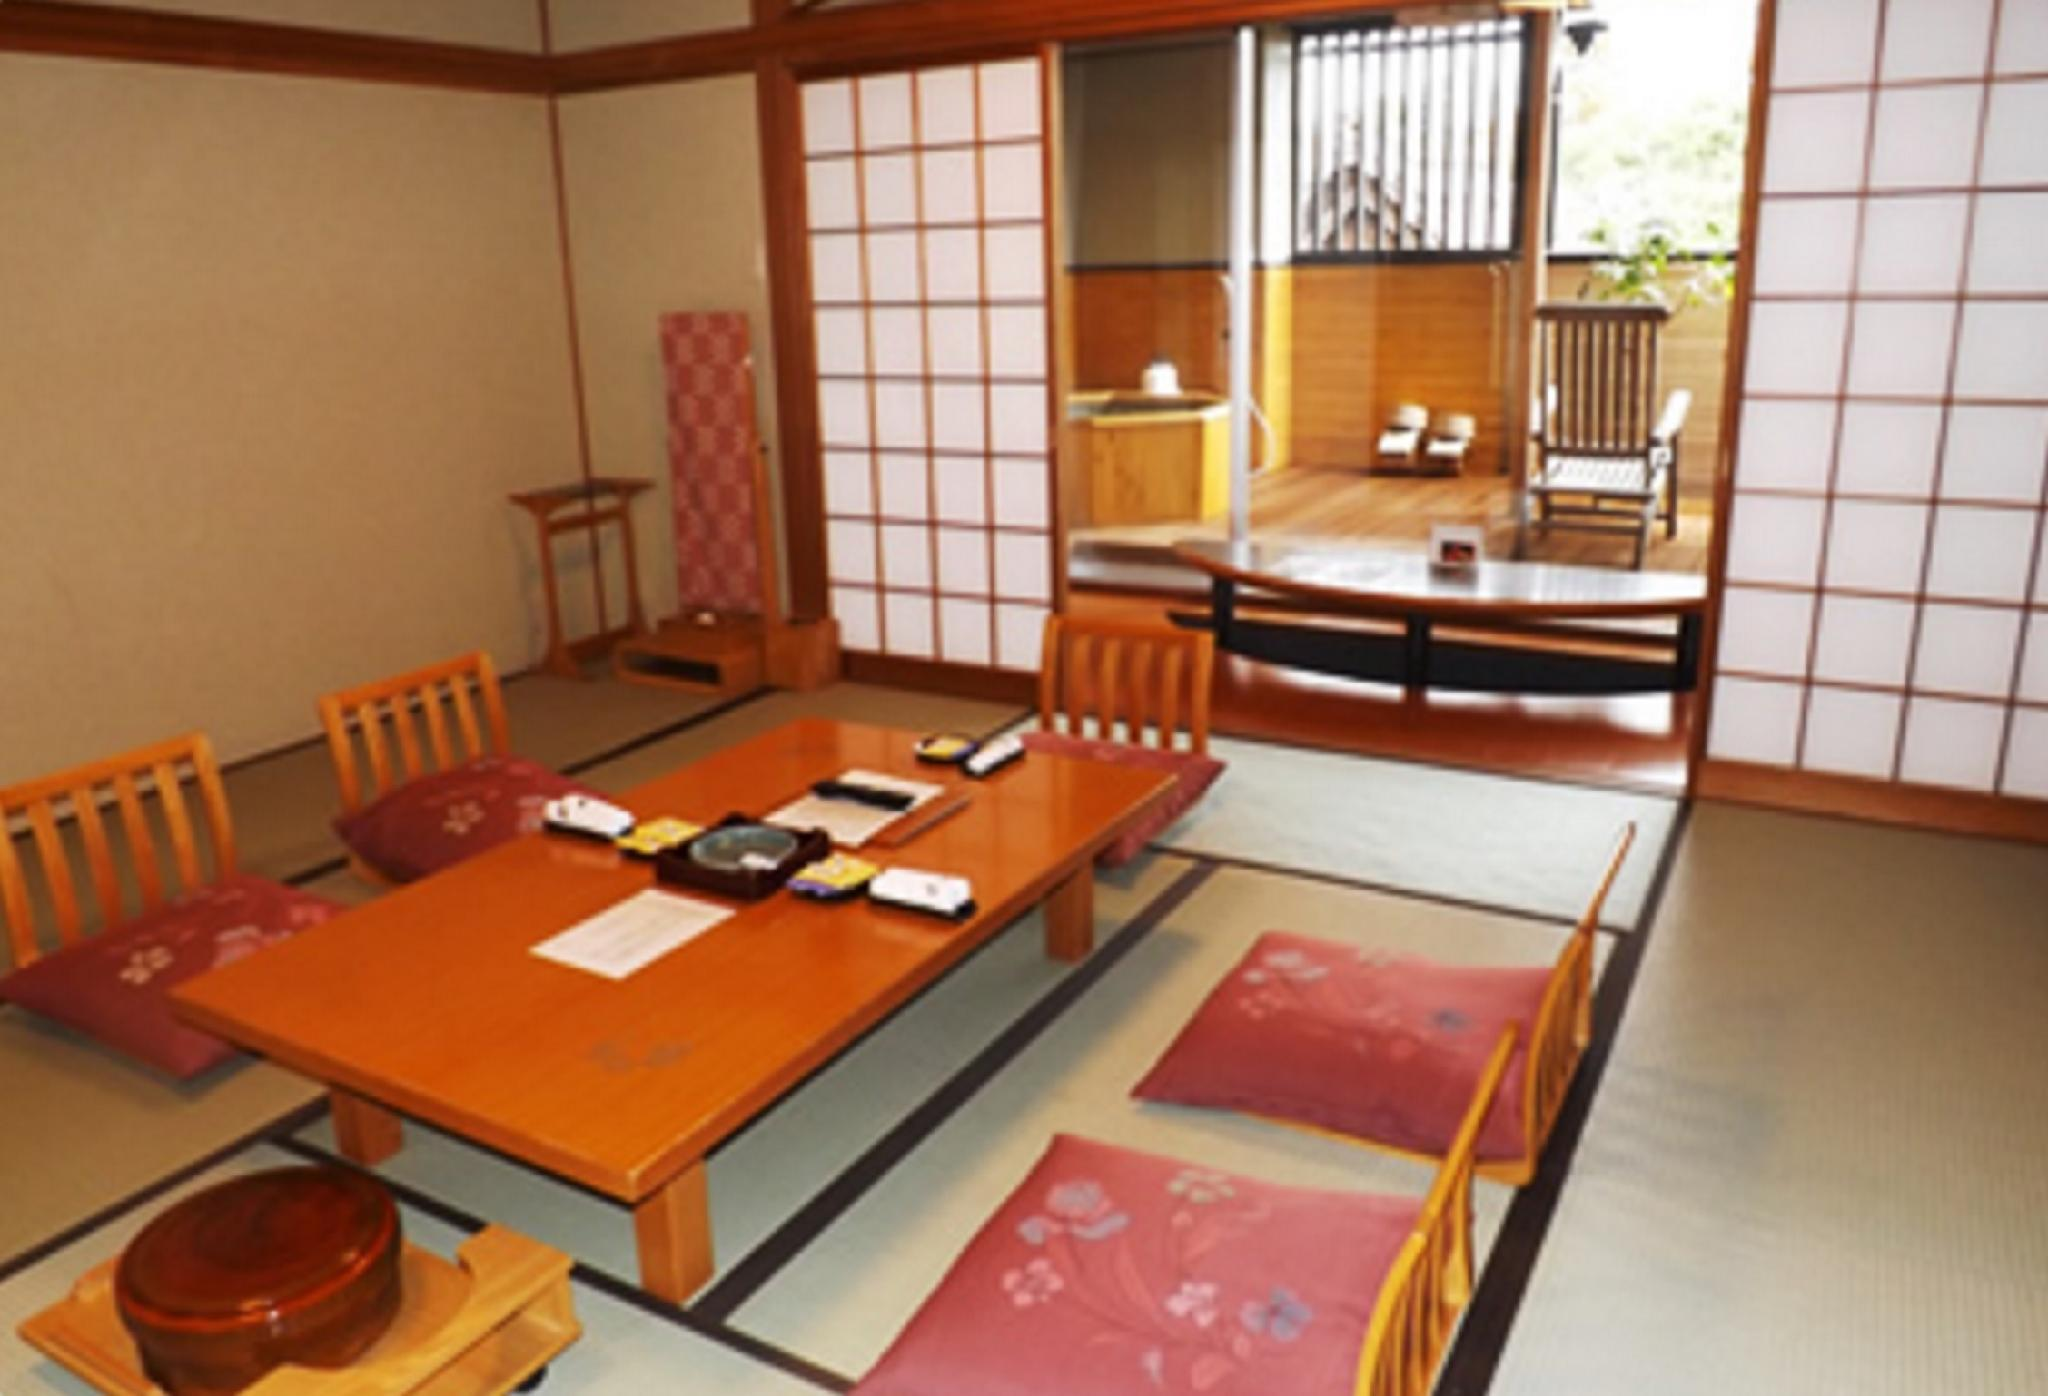 和室(4名・露天風呂あり) (Japanese Style Room for 4 People with Open-Air Bath)